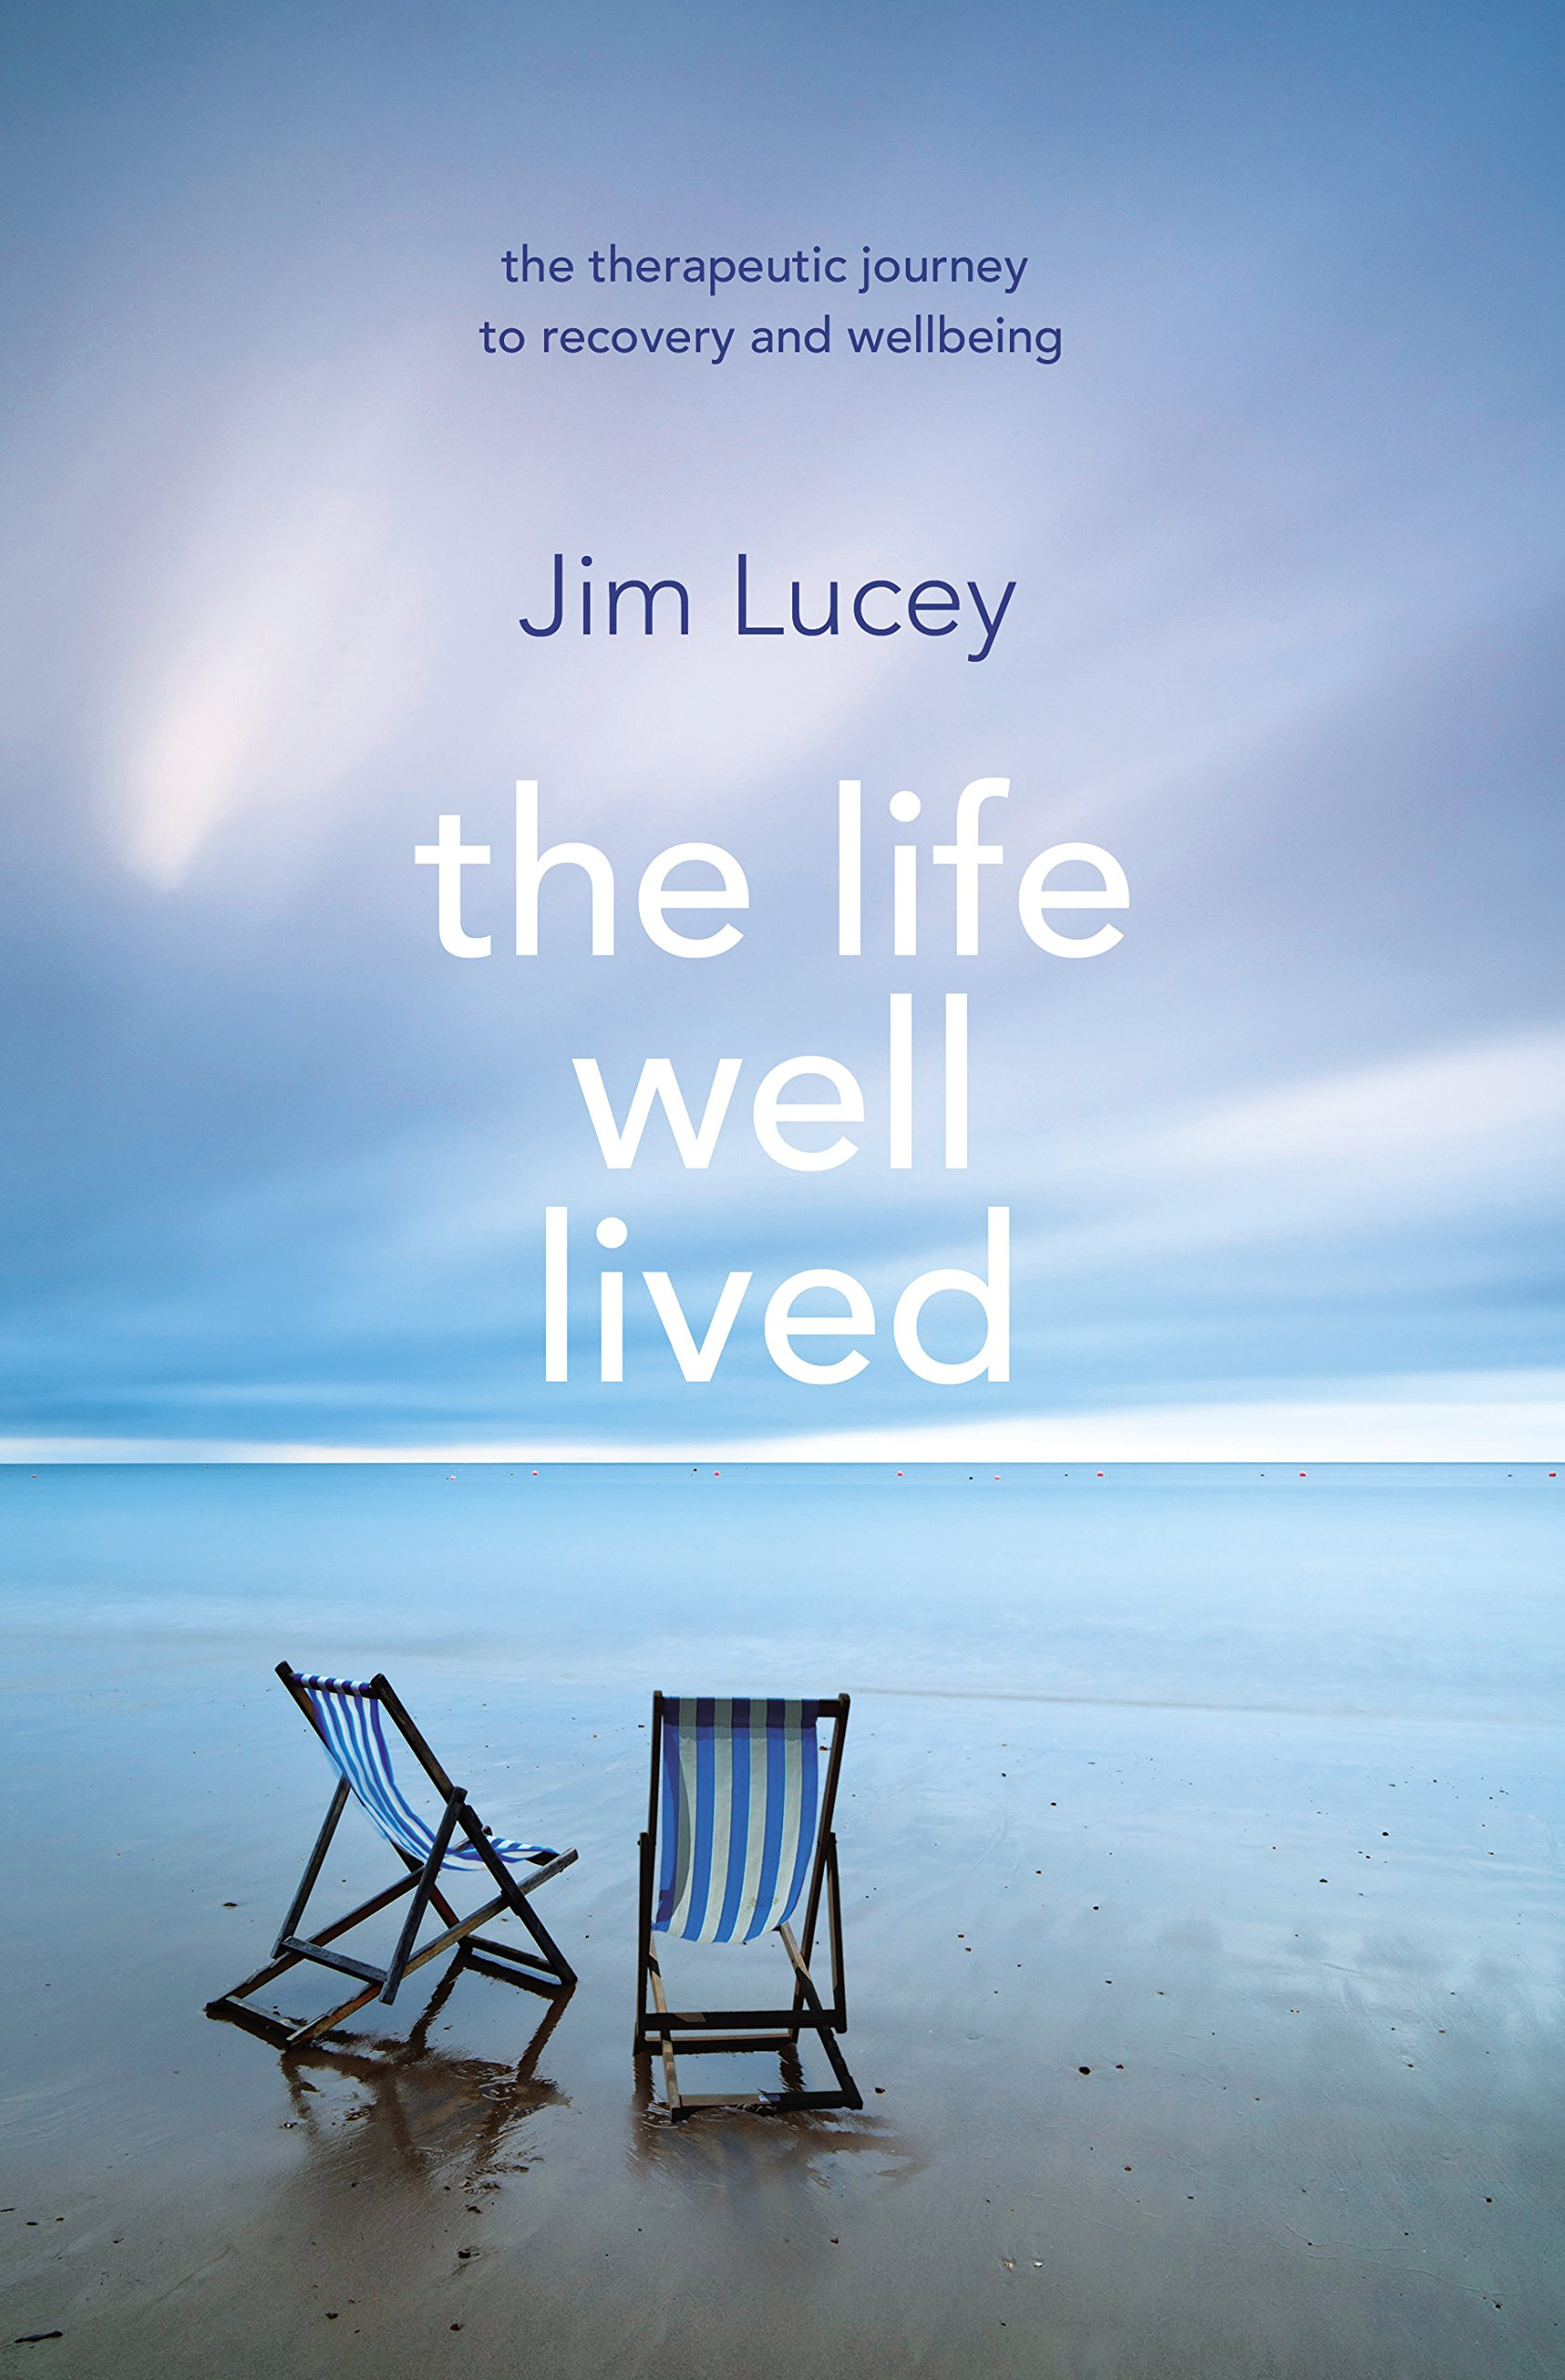 622b44f30 The Life Well Lived: Therapeutic Paths to Recovery and Wellbeing Paperback  – 15 Dec 2016